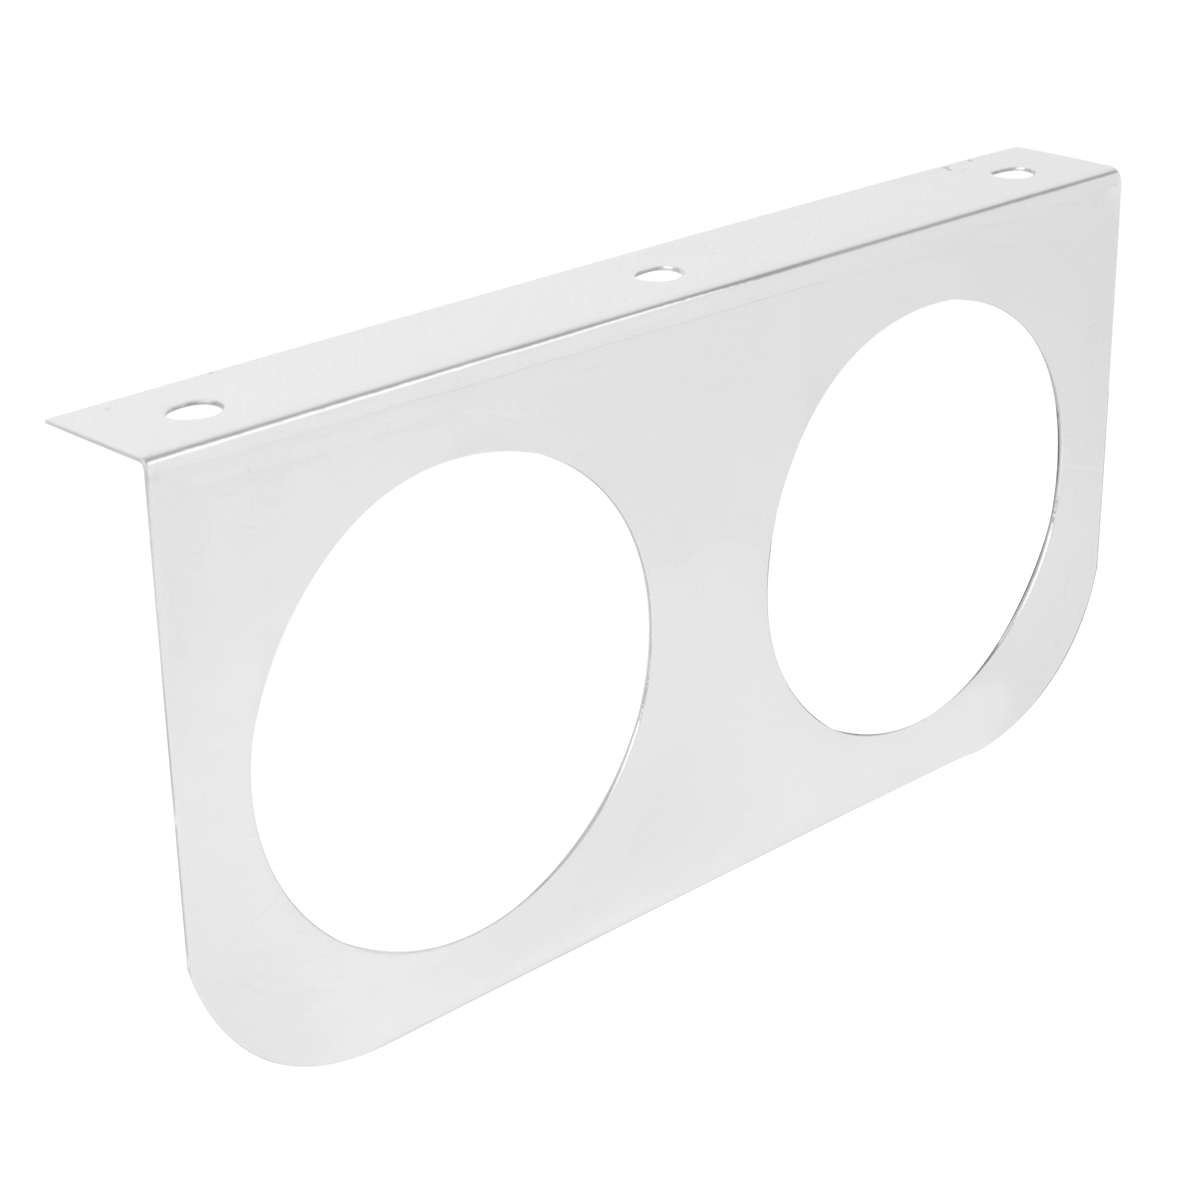 #81433 Stainless Steel Light Mounting Bracket Only